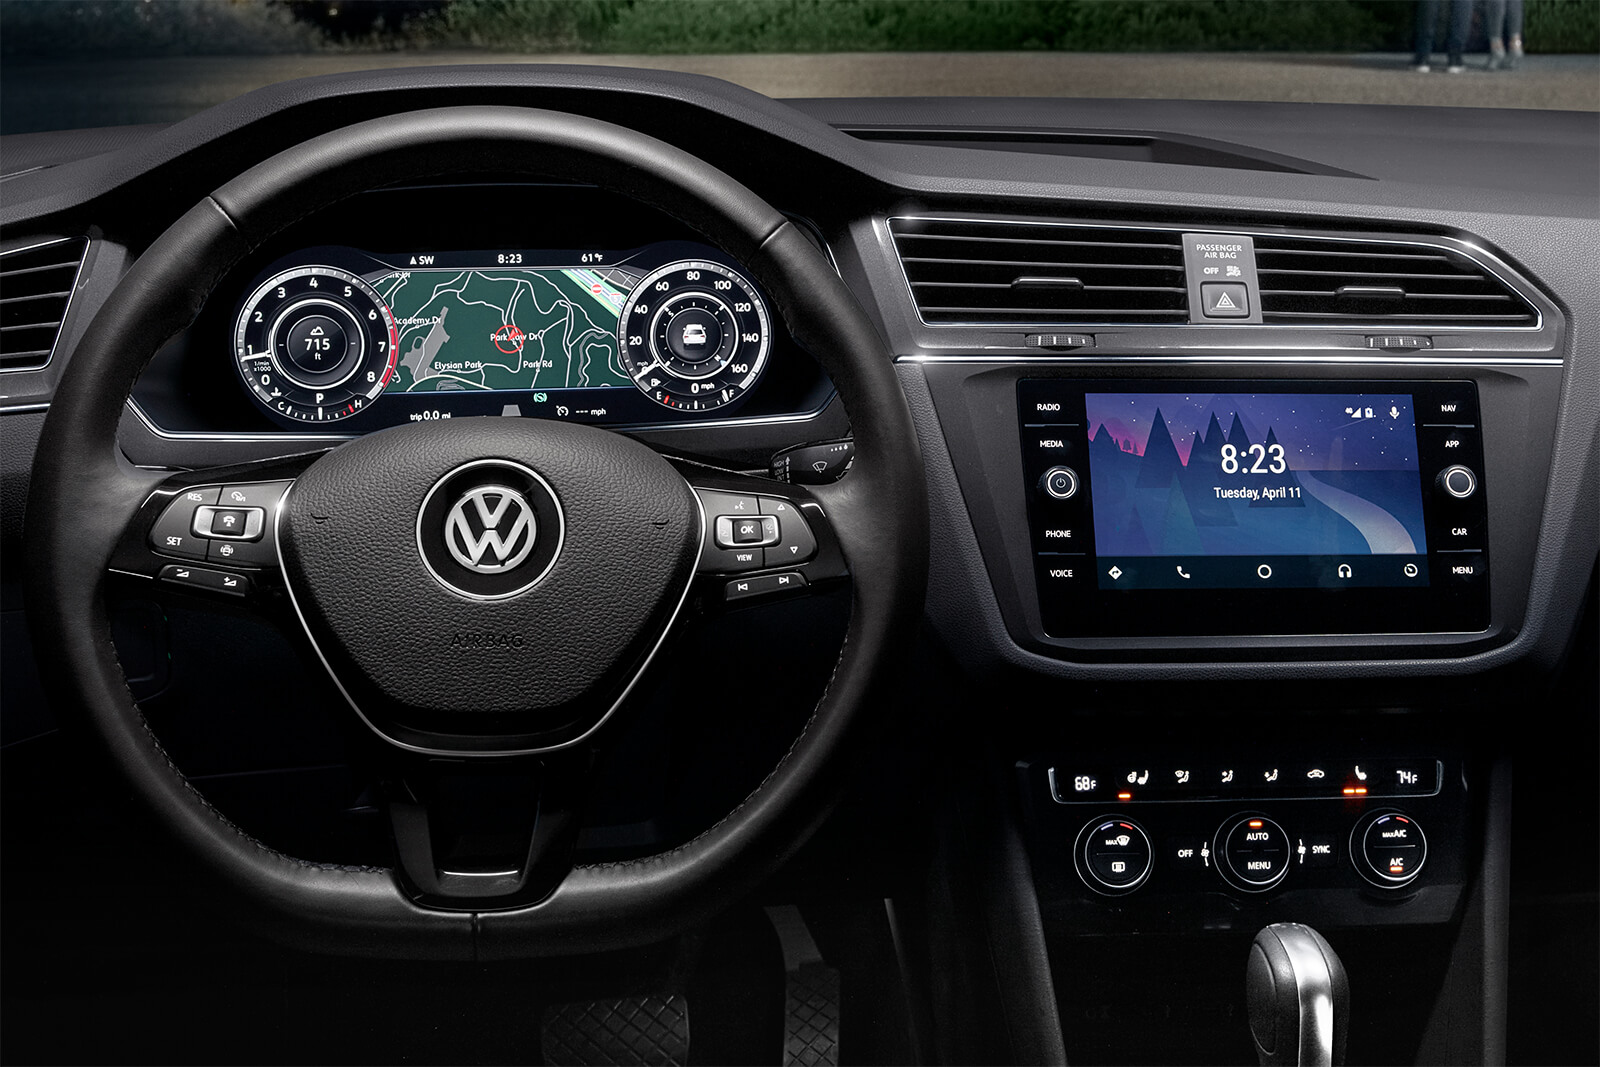 Interior of the 2019 Volkswagen Tiguan